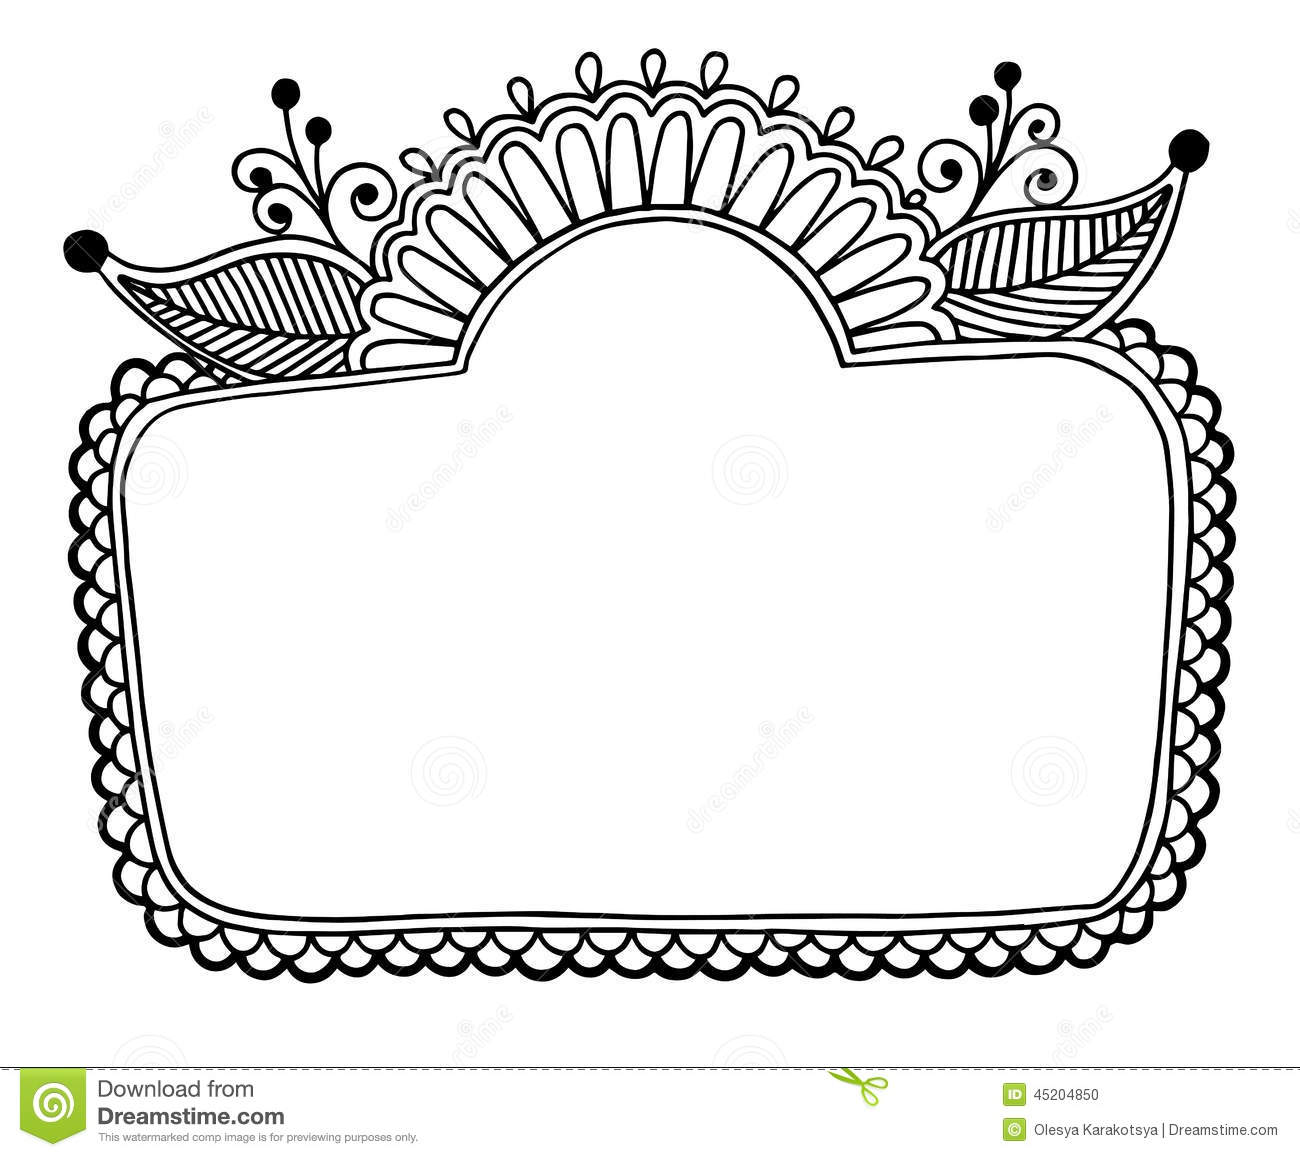 Black Line Art Ornate Flower Design Frame Stock Vector ...